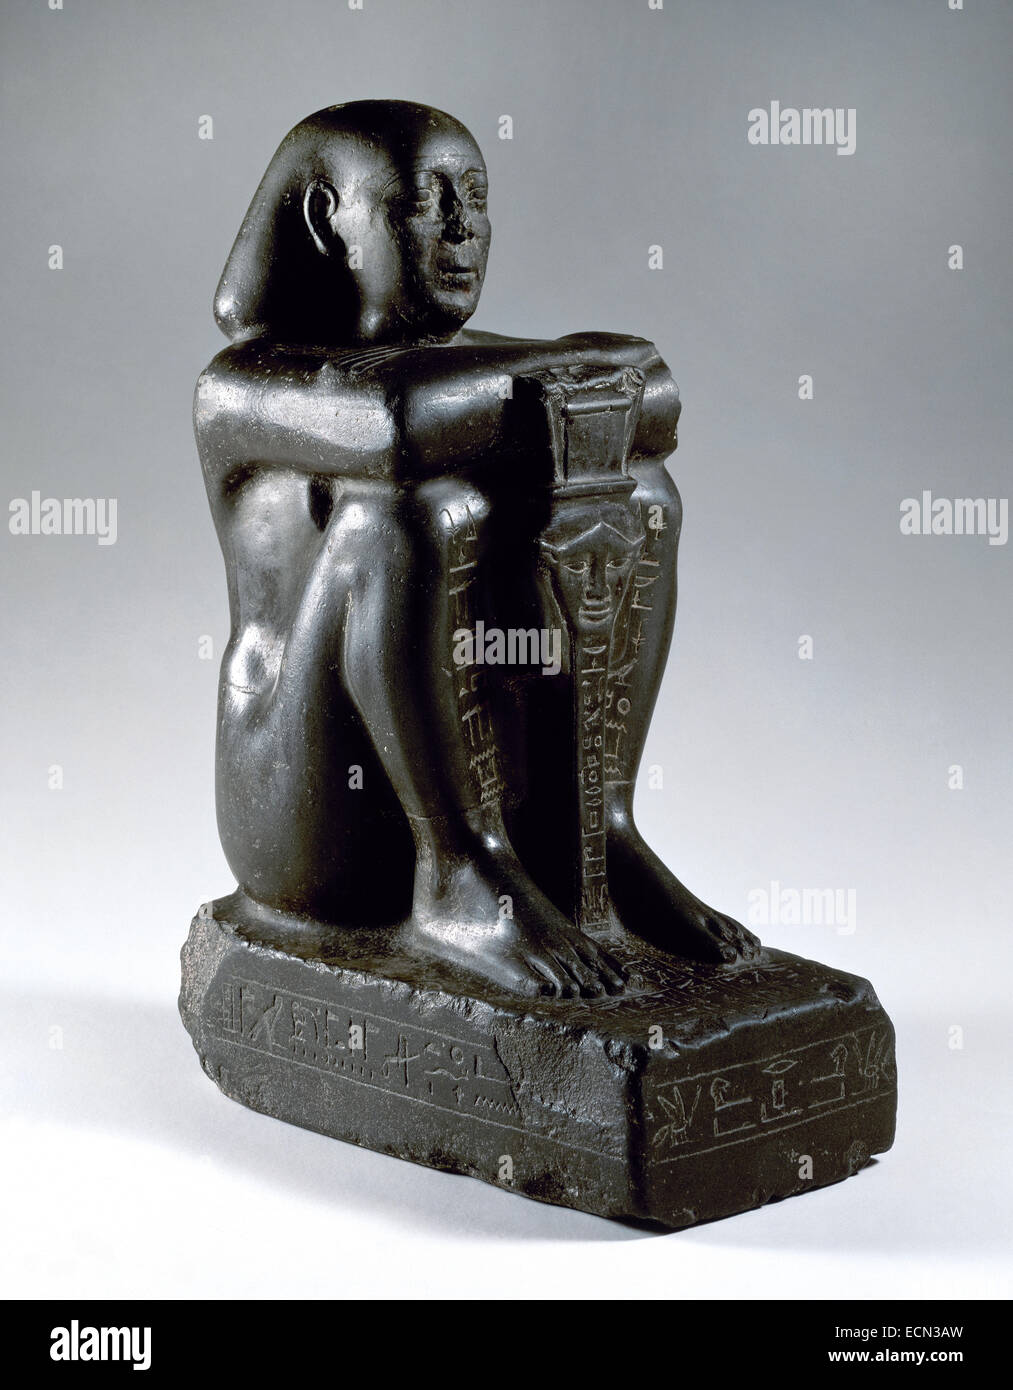 Block statue of Harsomtusemhat (664-610 B.C.) sitting on a socle, with his legs grouped and the hands on his knees. Stock Photo